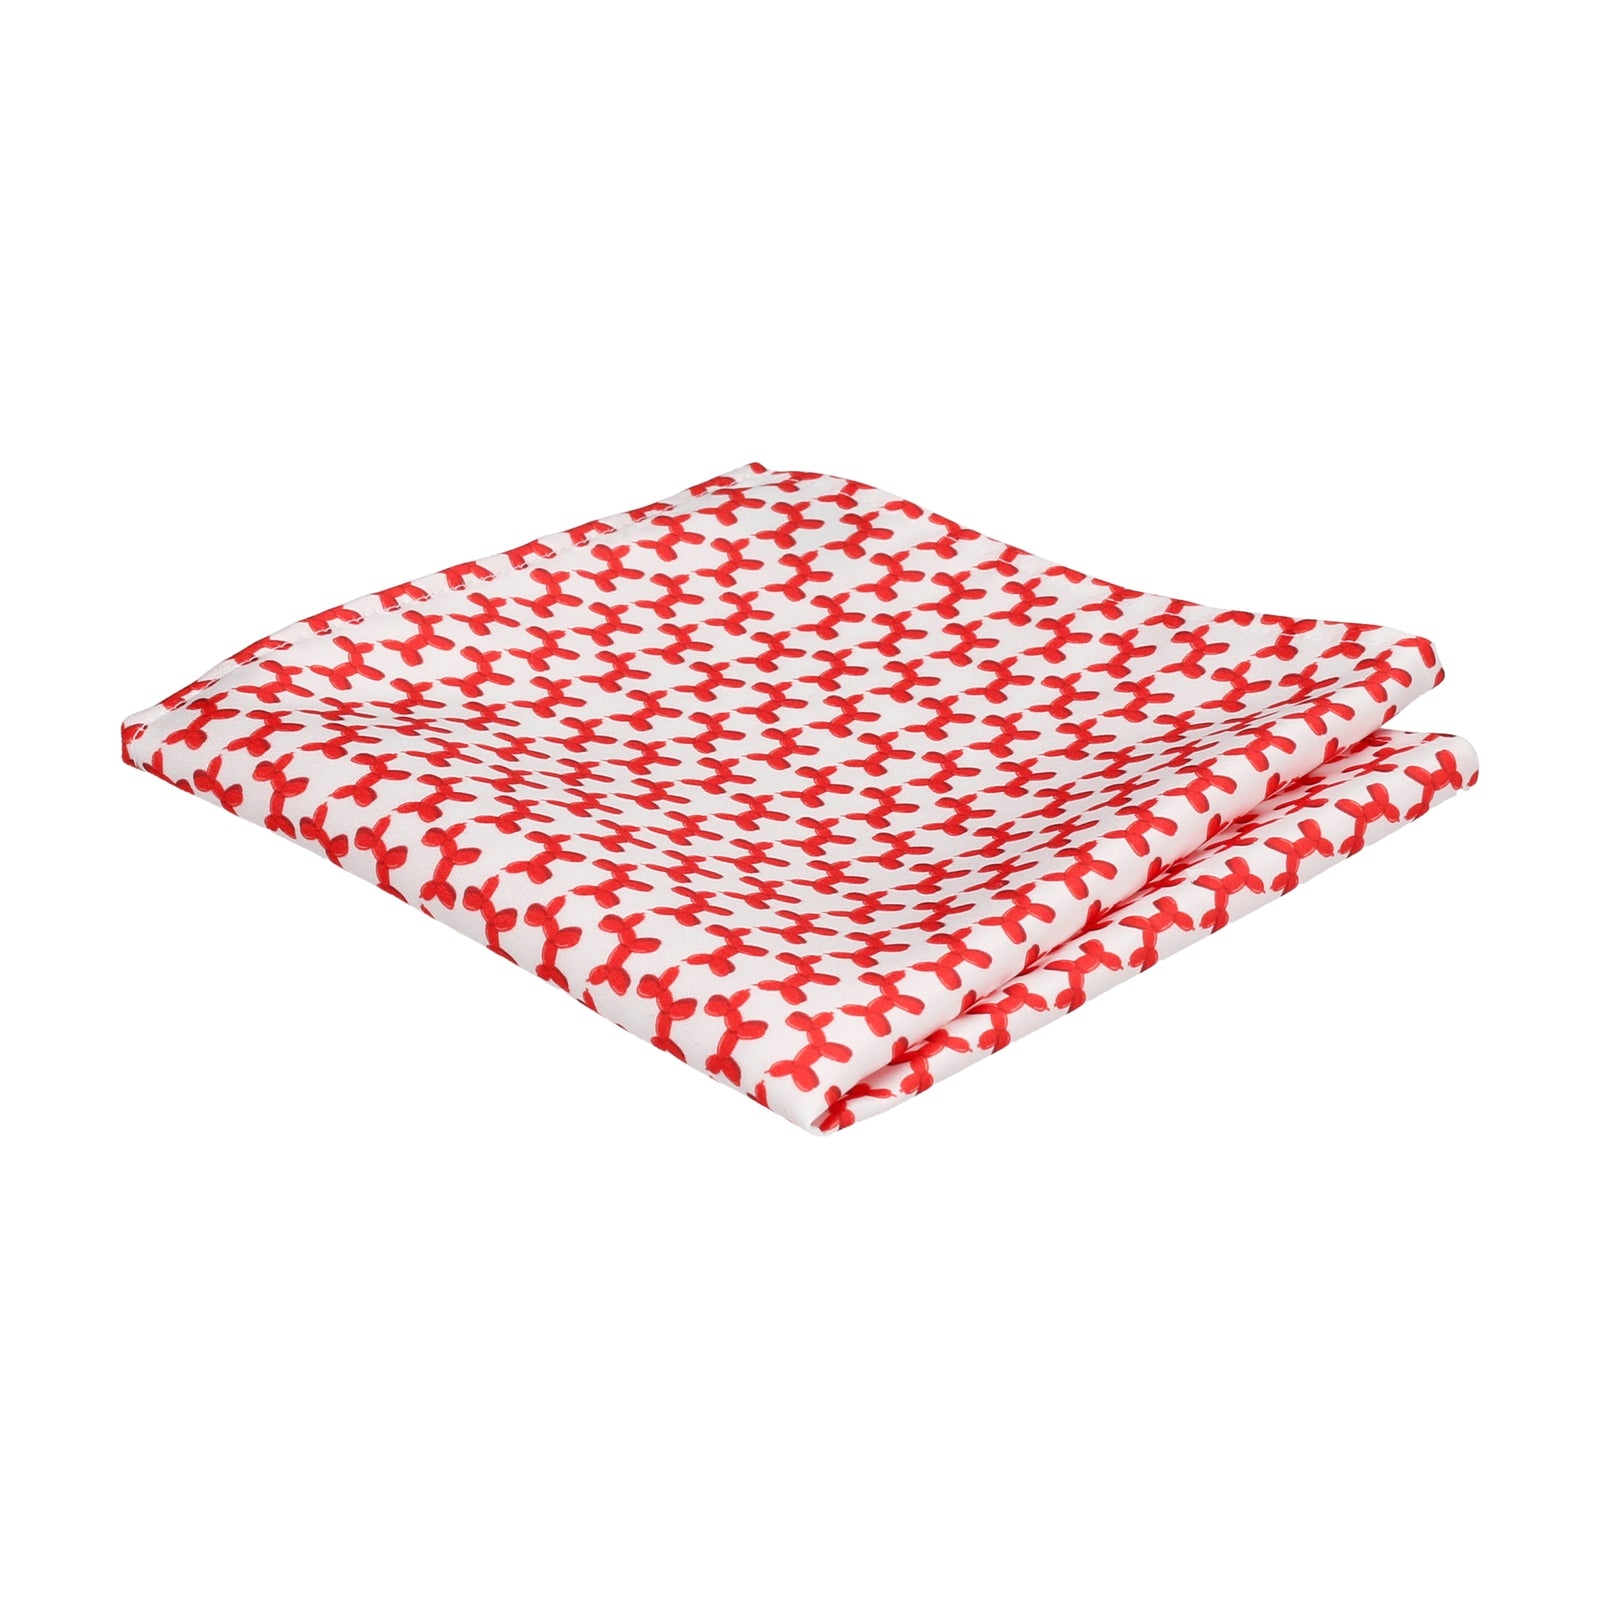 White & Red Balloon Dogs Pocket Square